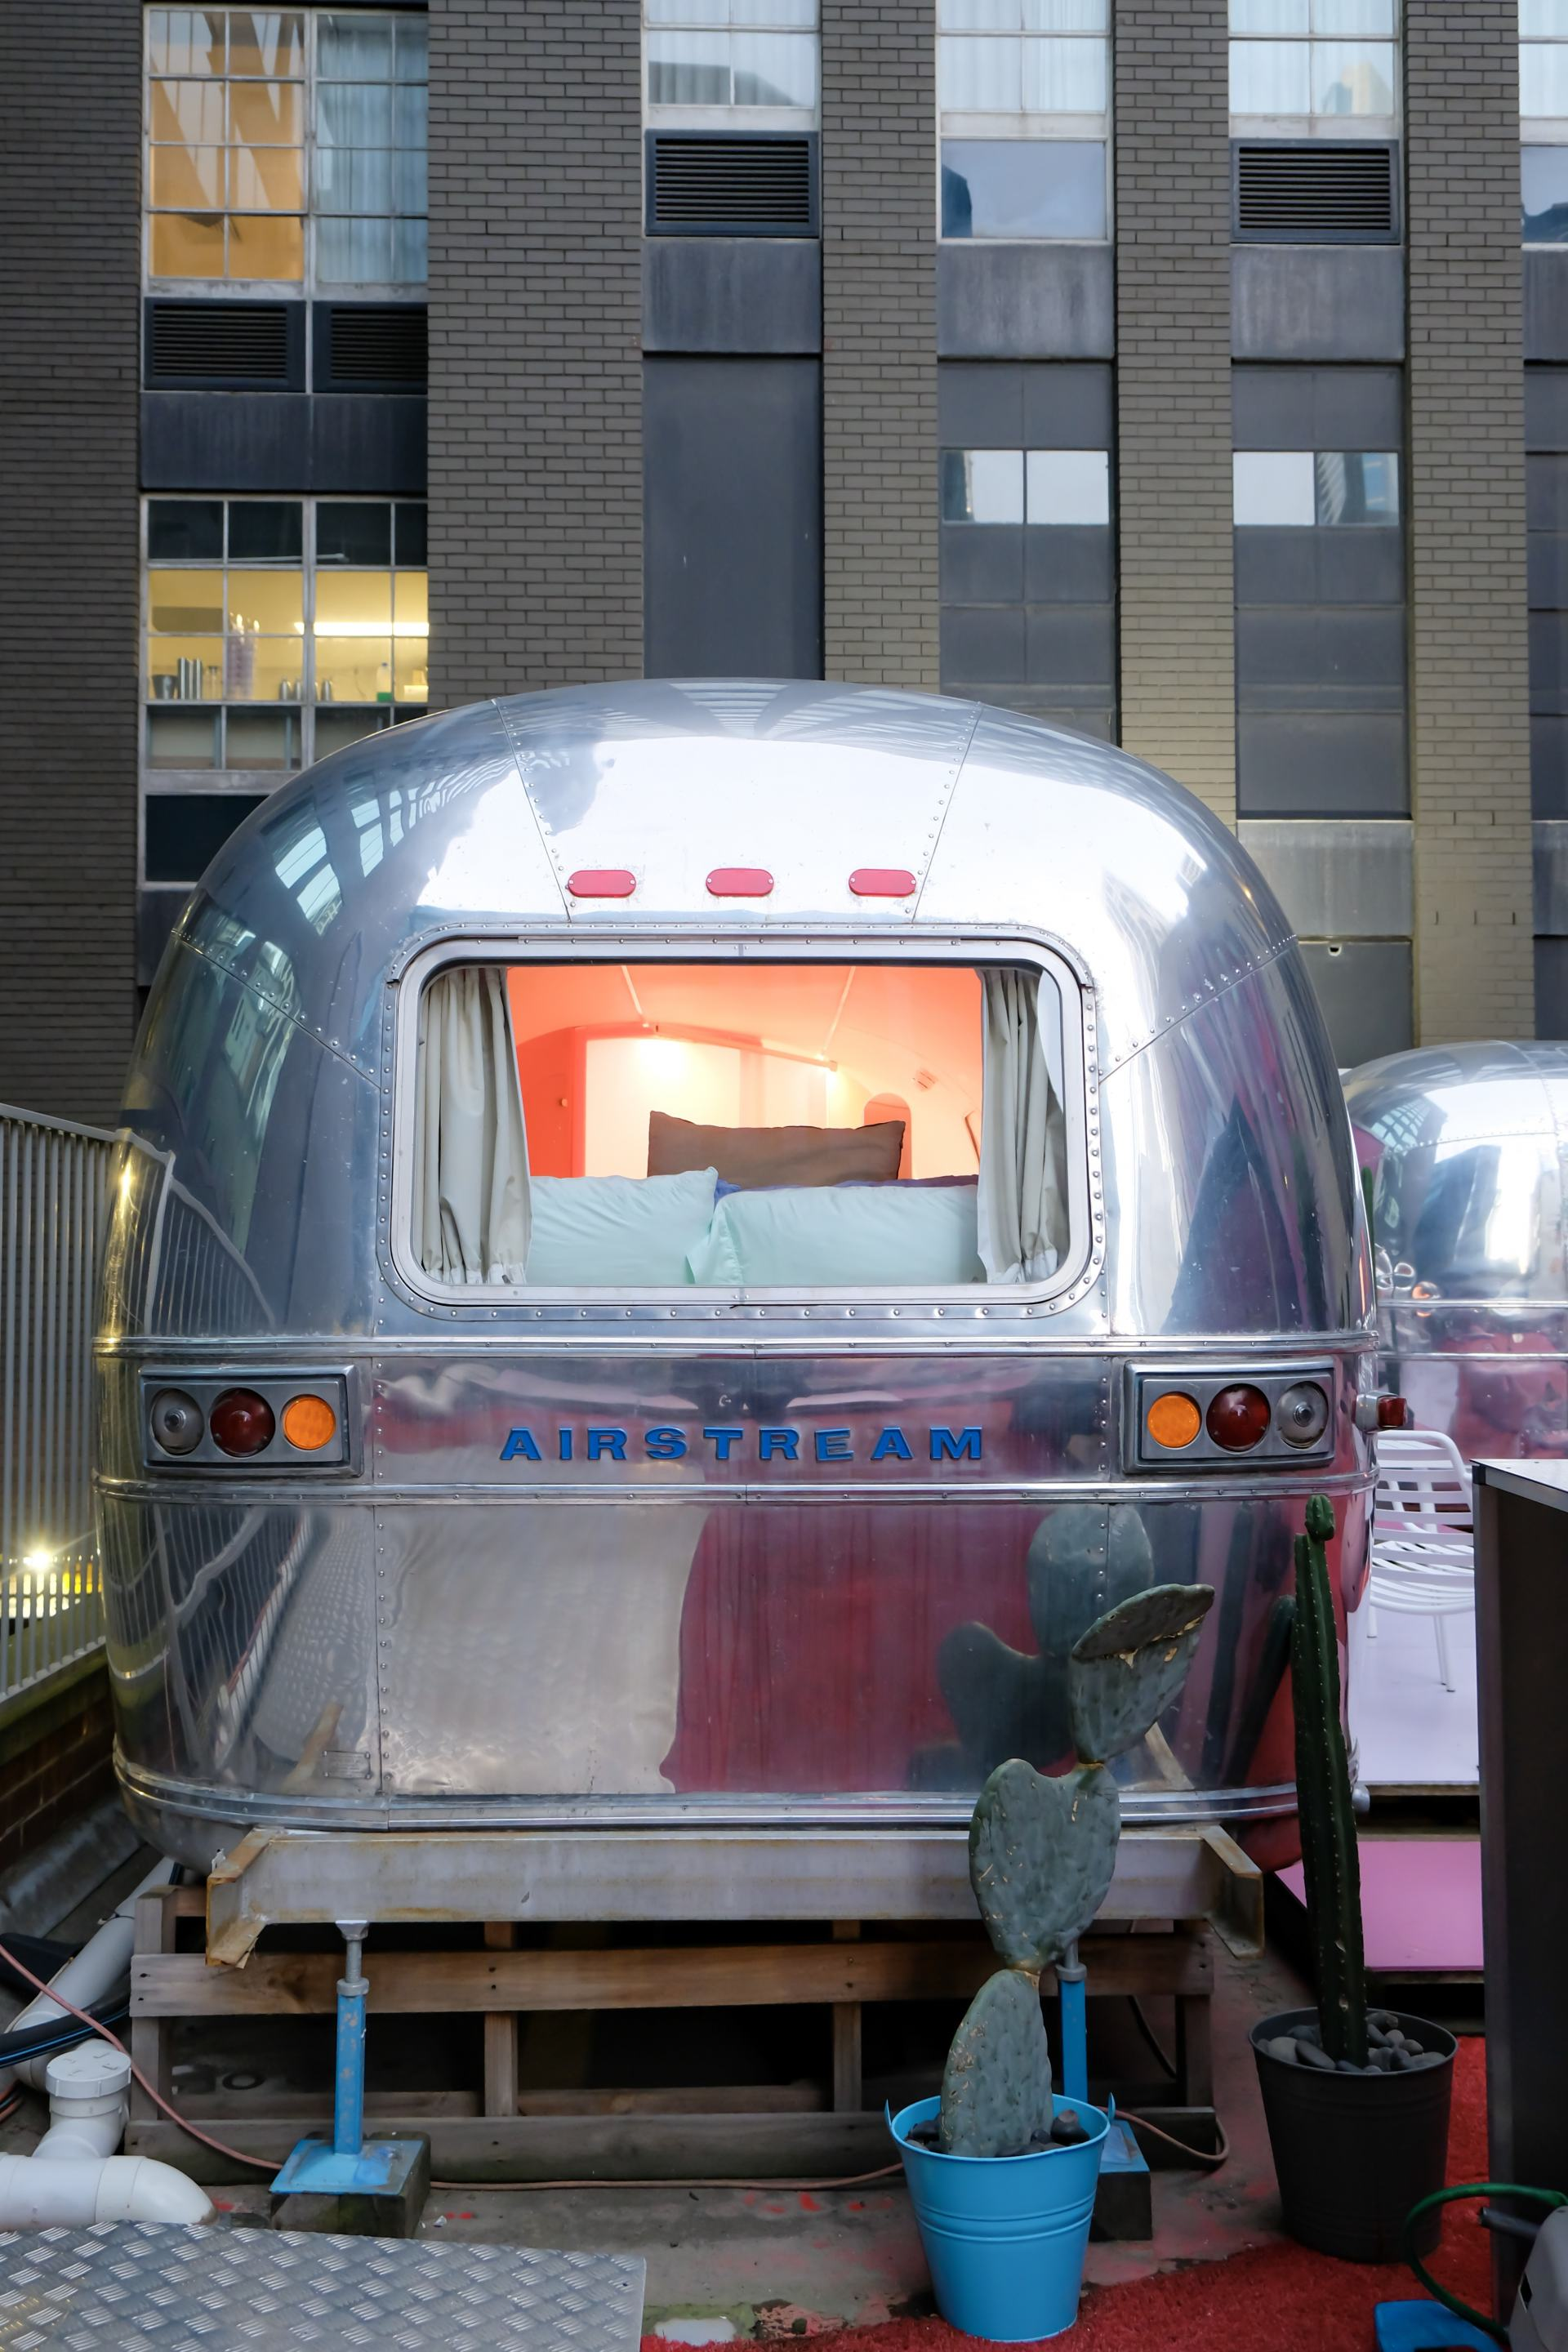 notel airstream